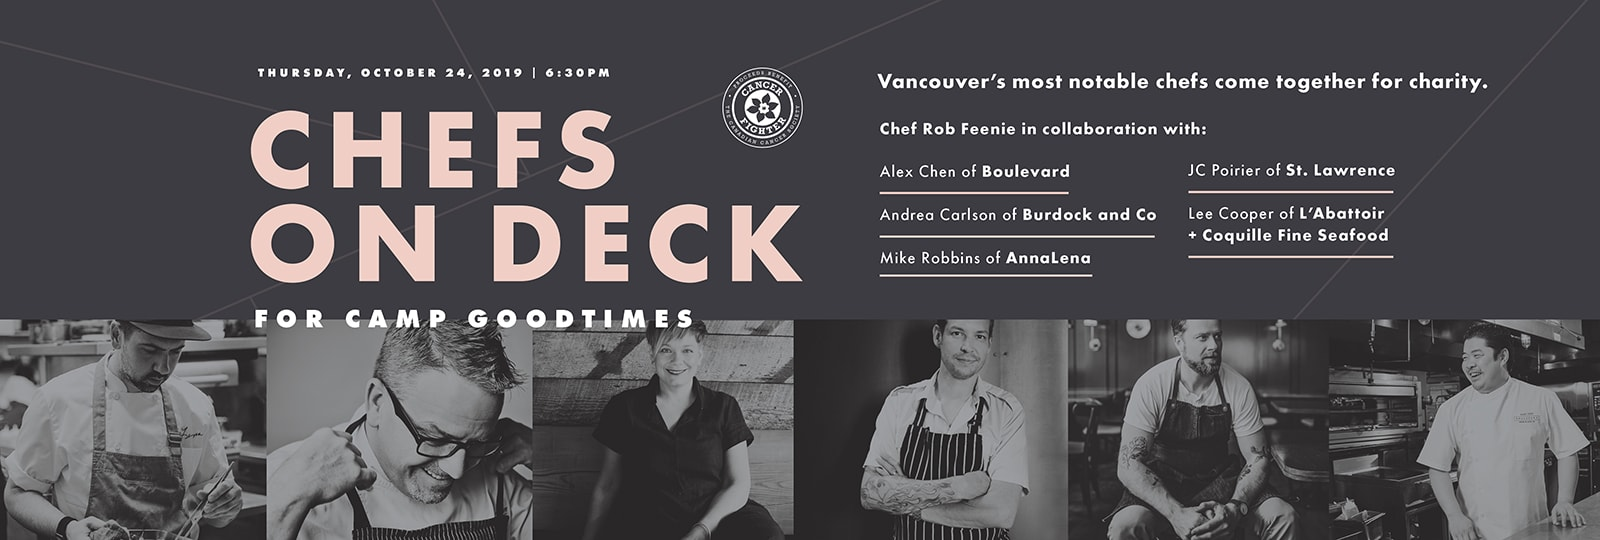 Chefs on Deck for Camp Goodtimes